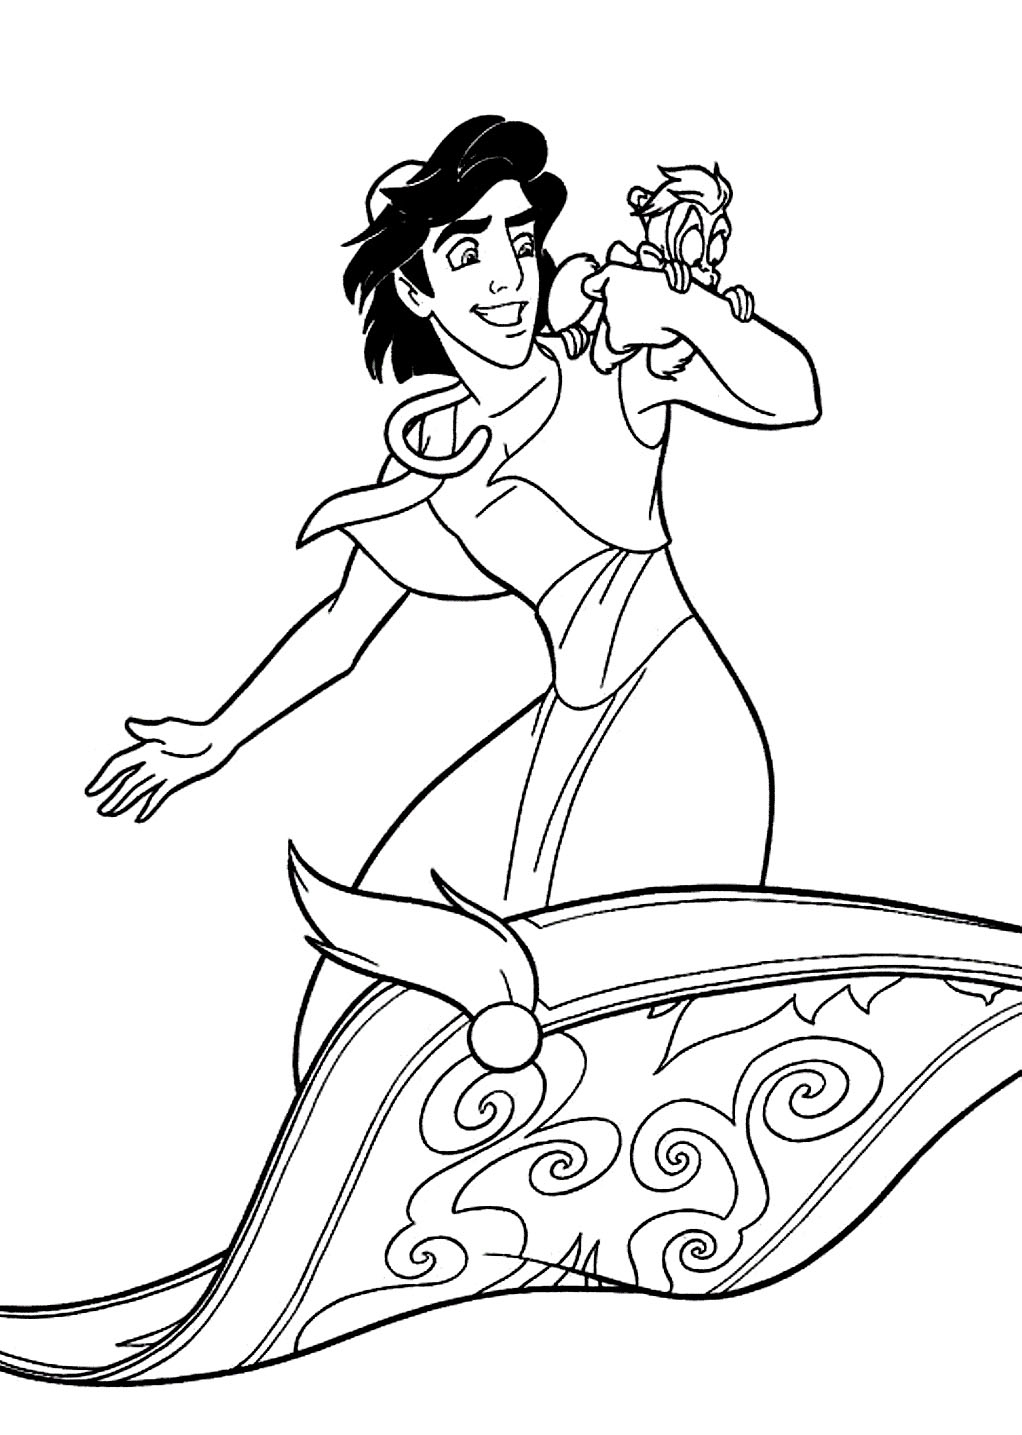 aladdin magic carpet coloring pages - photo#13